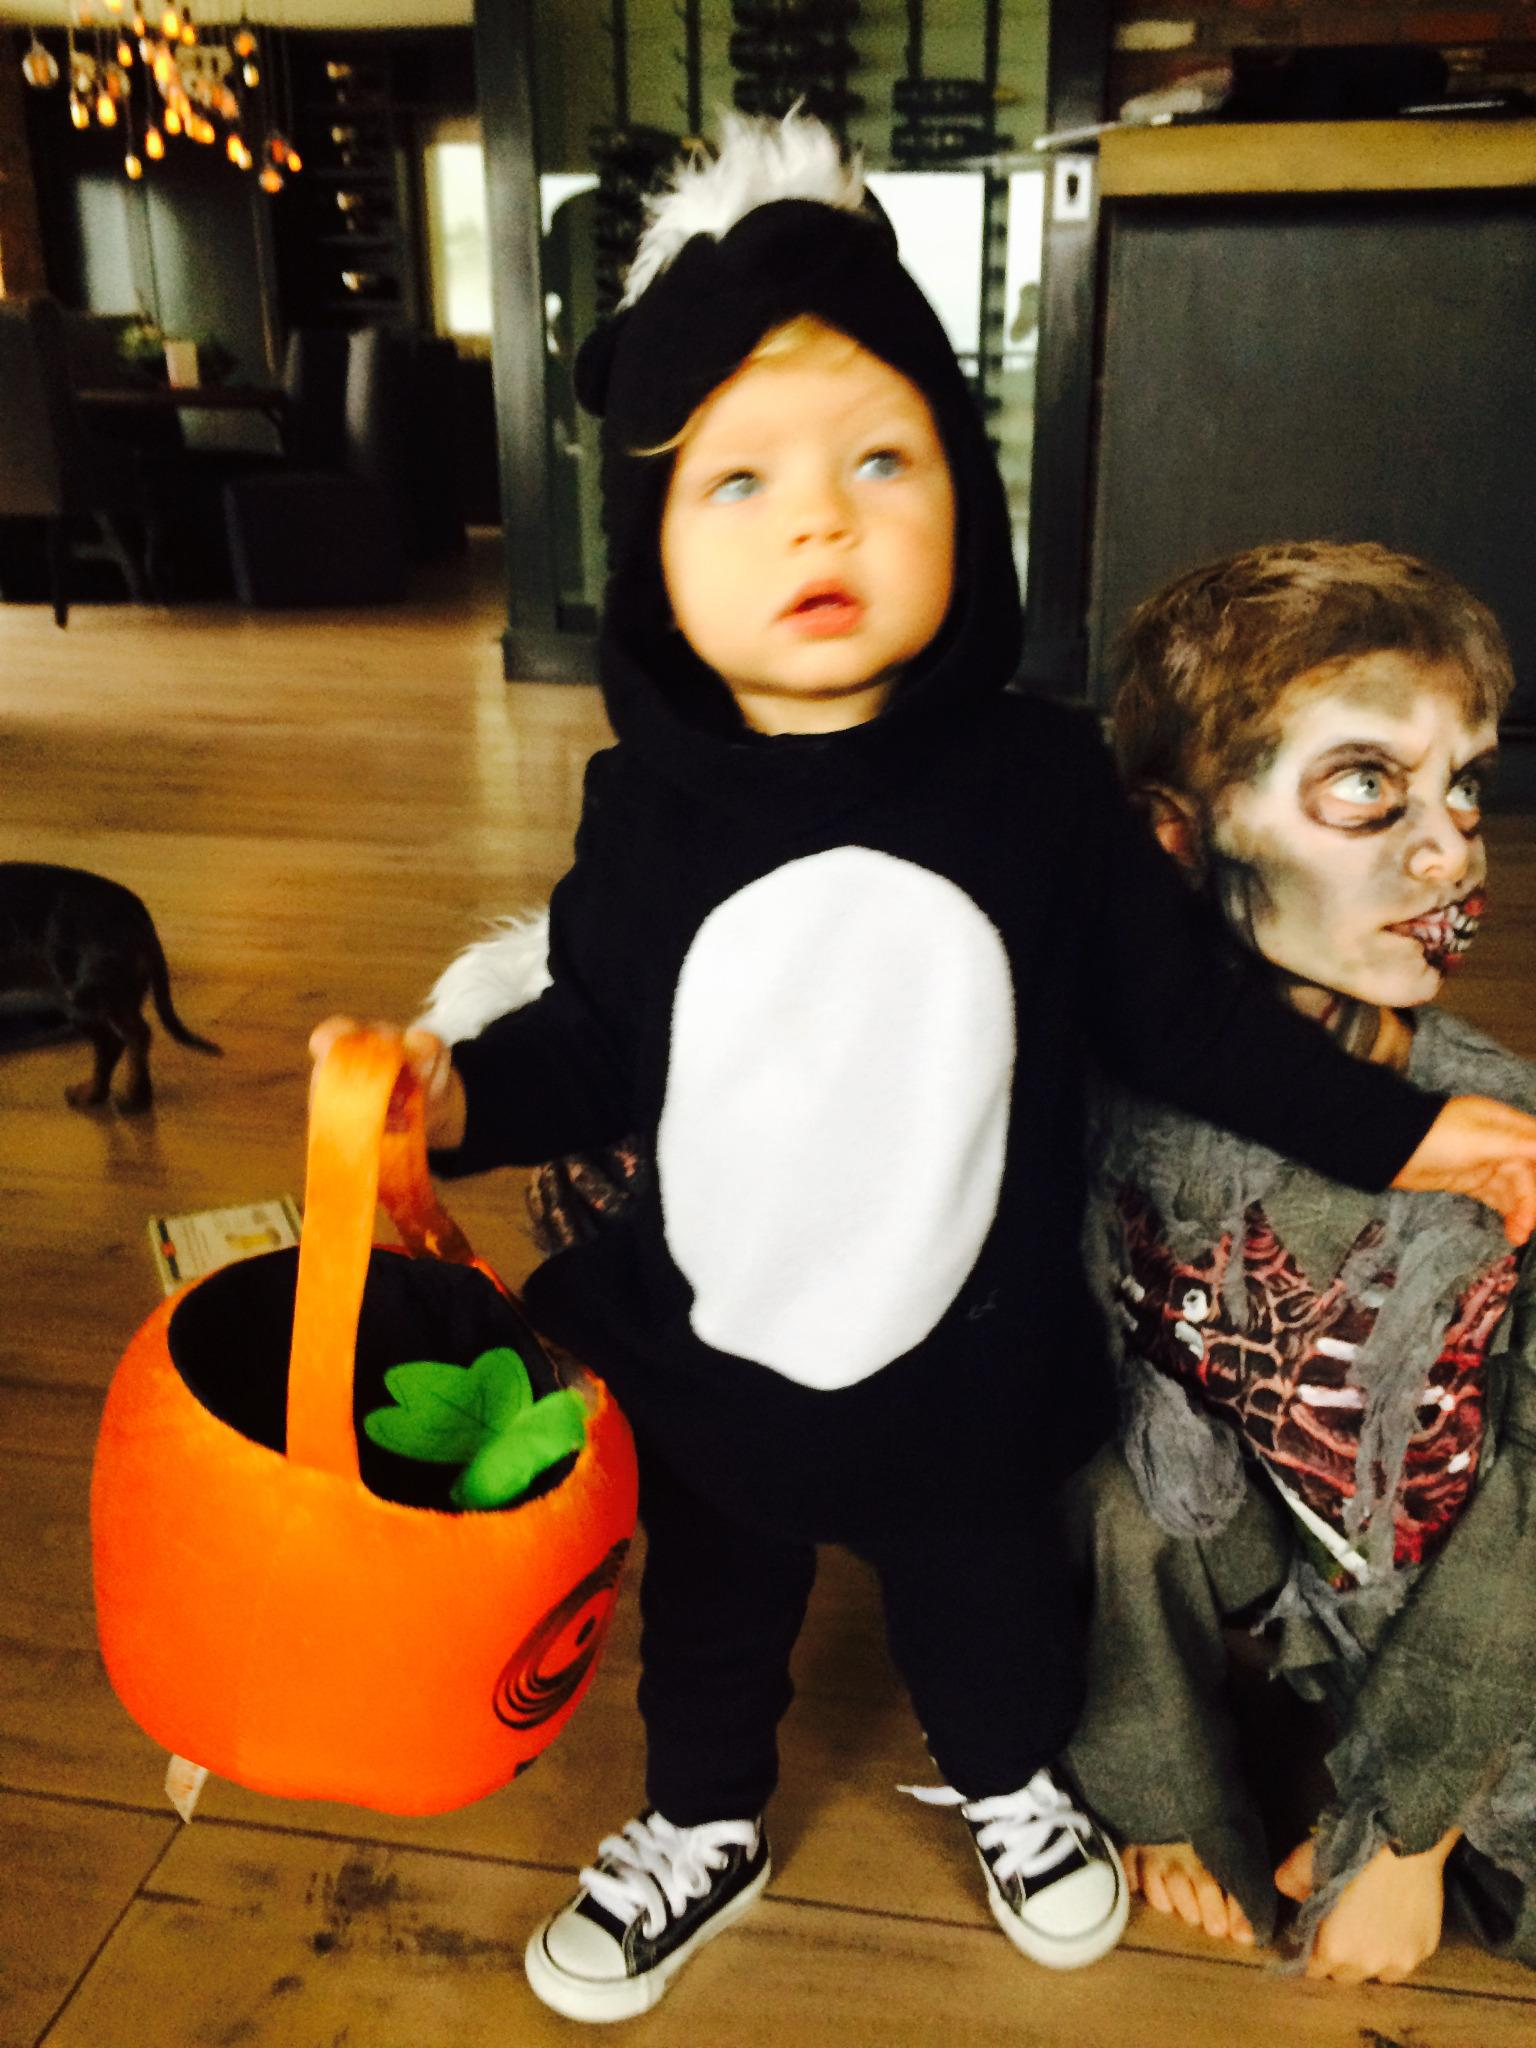 First trick or treat!!! Daddy's lil stinker. :) http://t.co/PIkWIuZbEt http://t.co/TBMjo19TmL